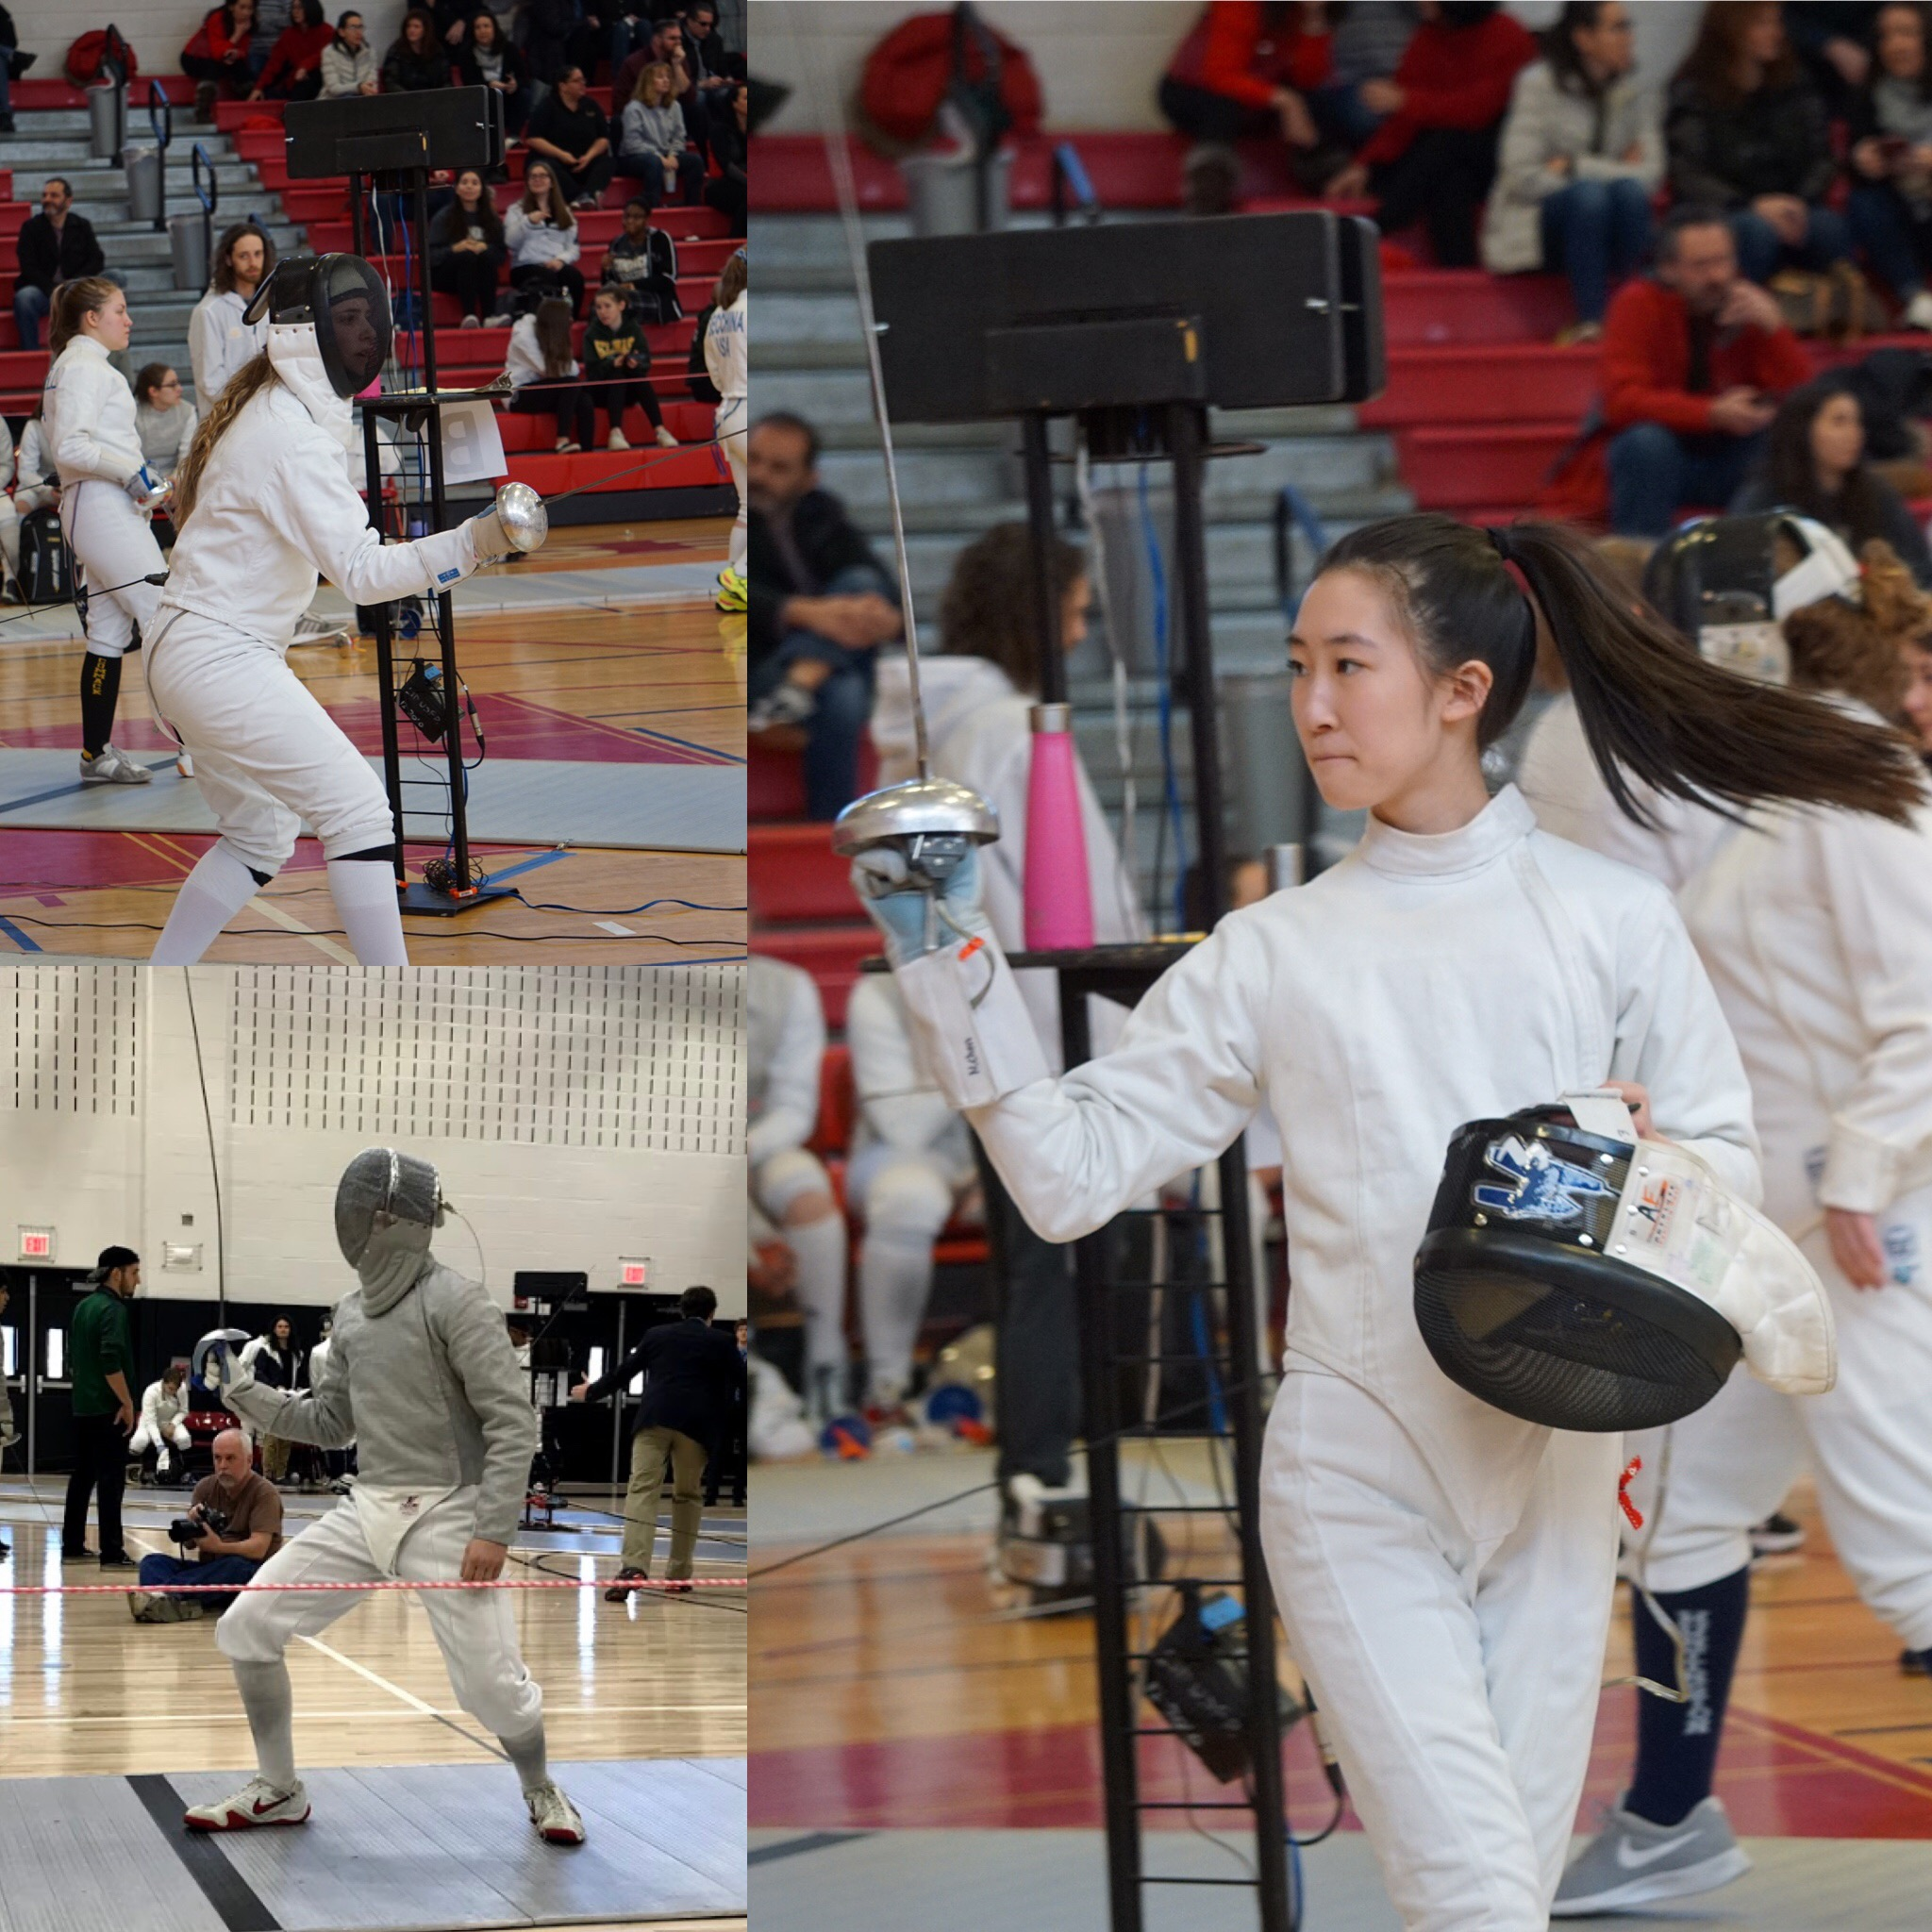 Hills' Fencing Teams Finish Successful Seasons